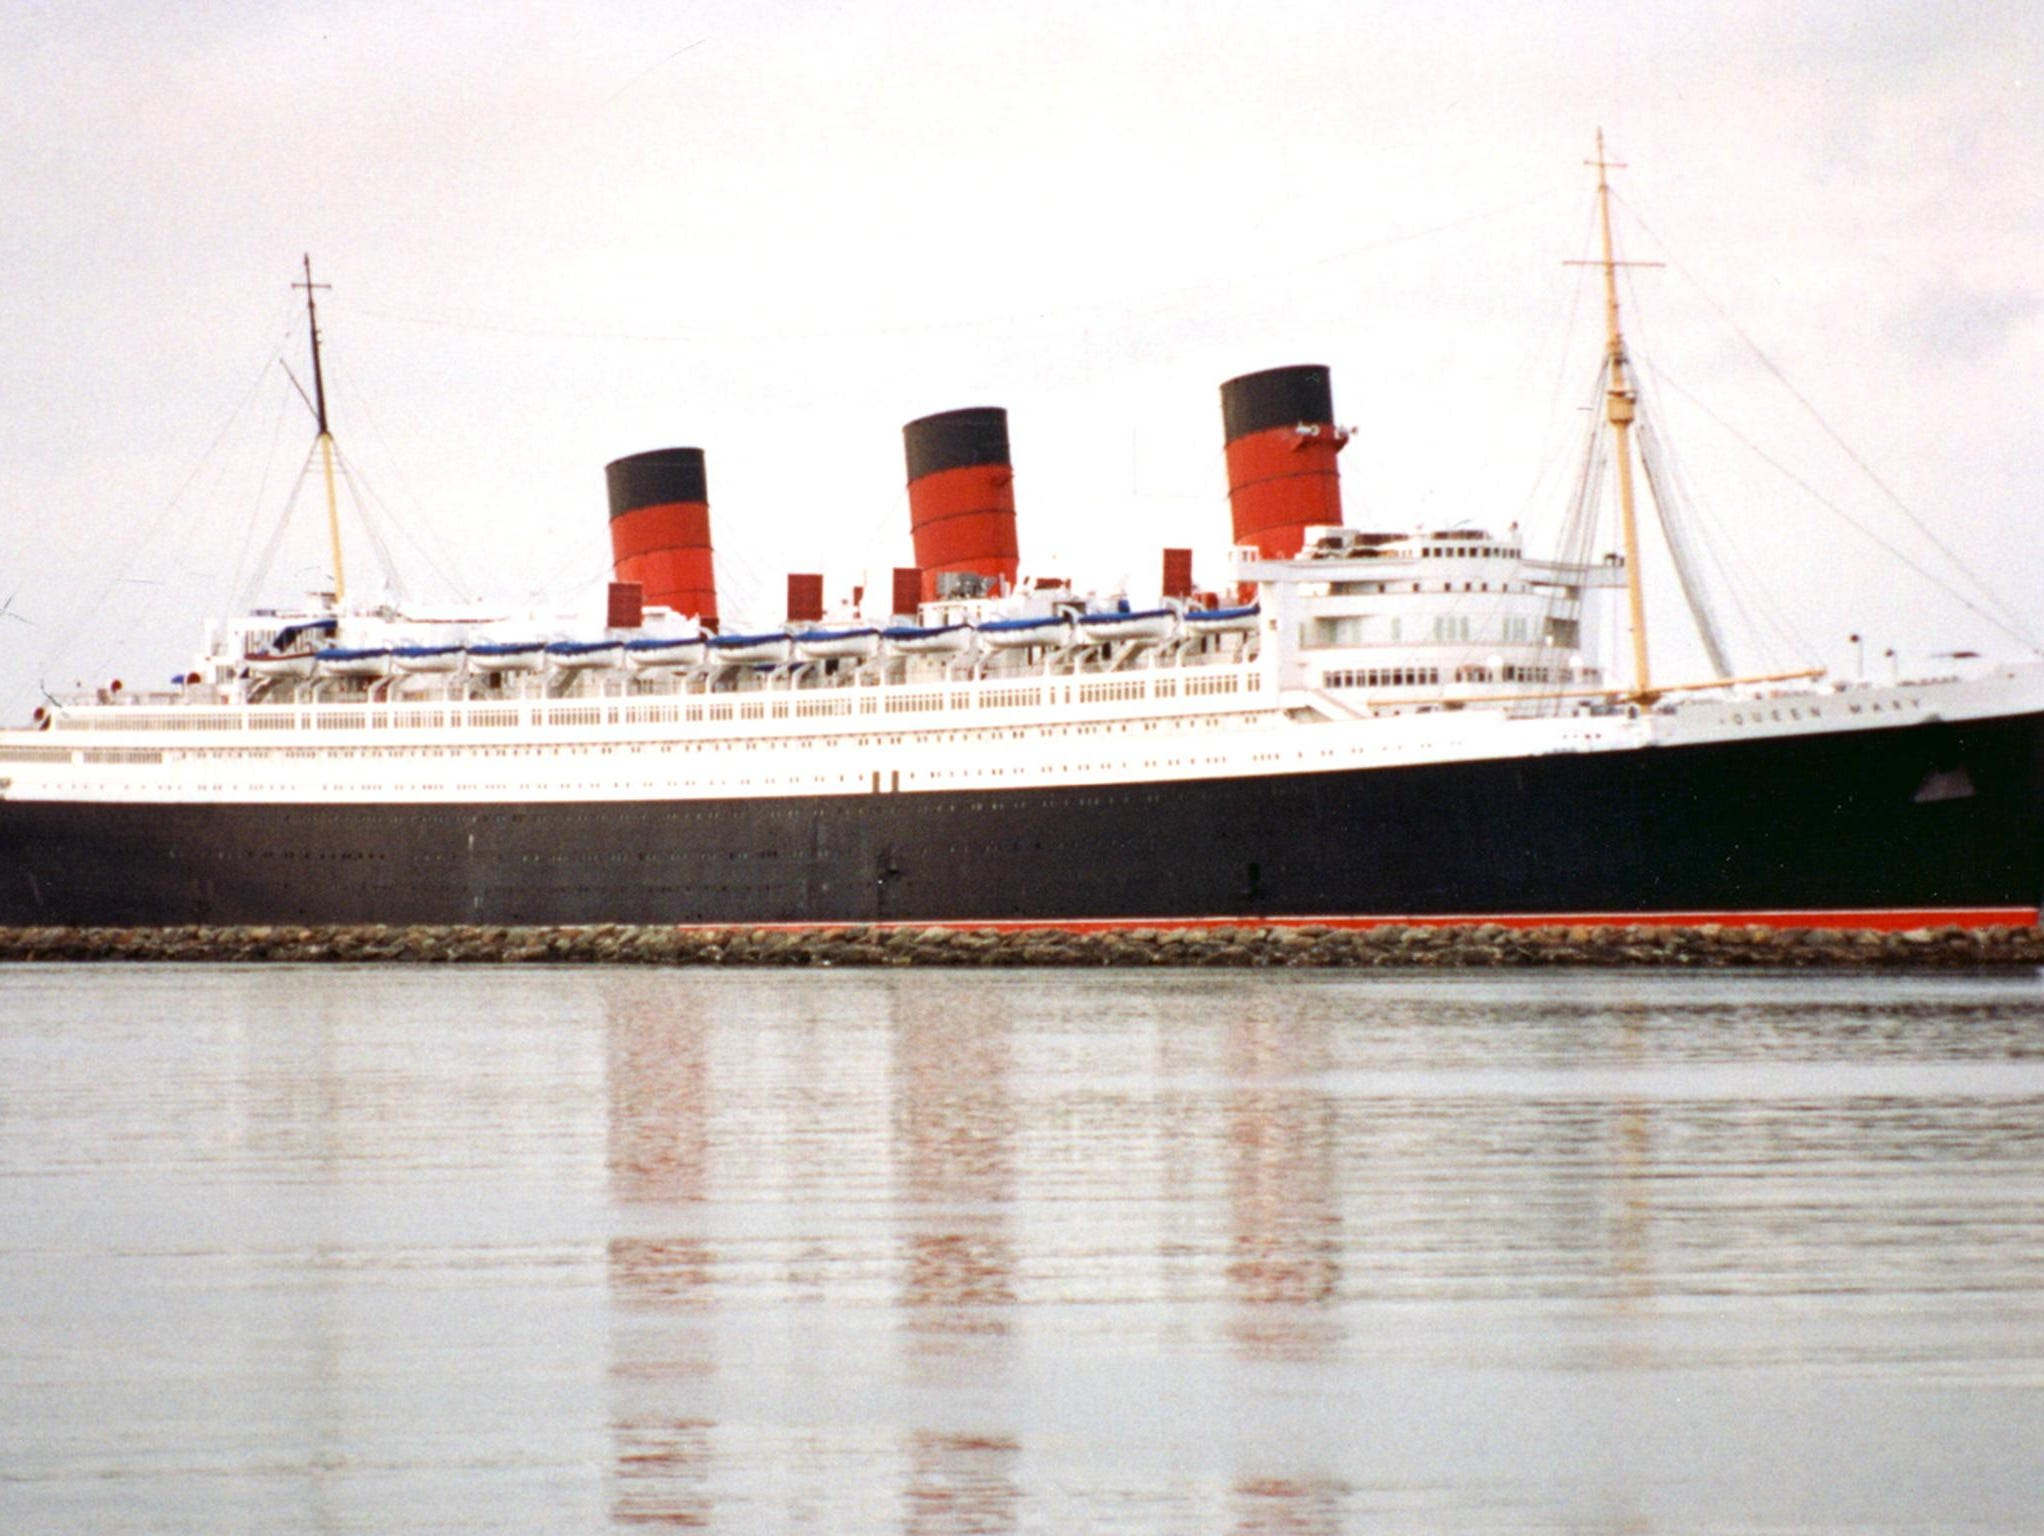 Since becoming a California-based tourist attraction, the Queen Mary has been used as a the occasional Hollywood set. In 1972, the Irwin Allen disaster movie,The Poseidon Adventure,was filmed on board and the ship has made many appearances in other movies and television shows.